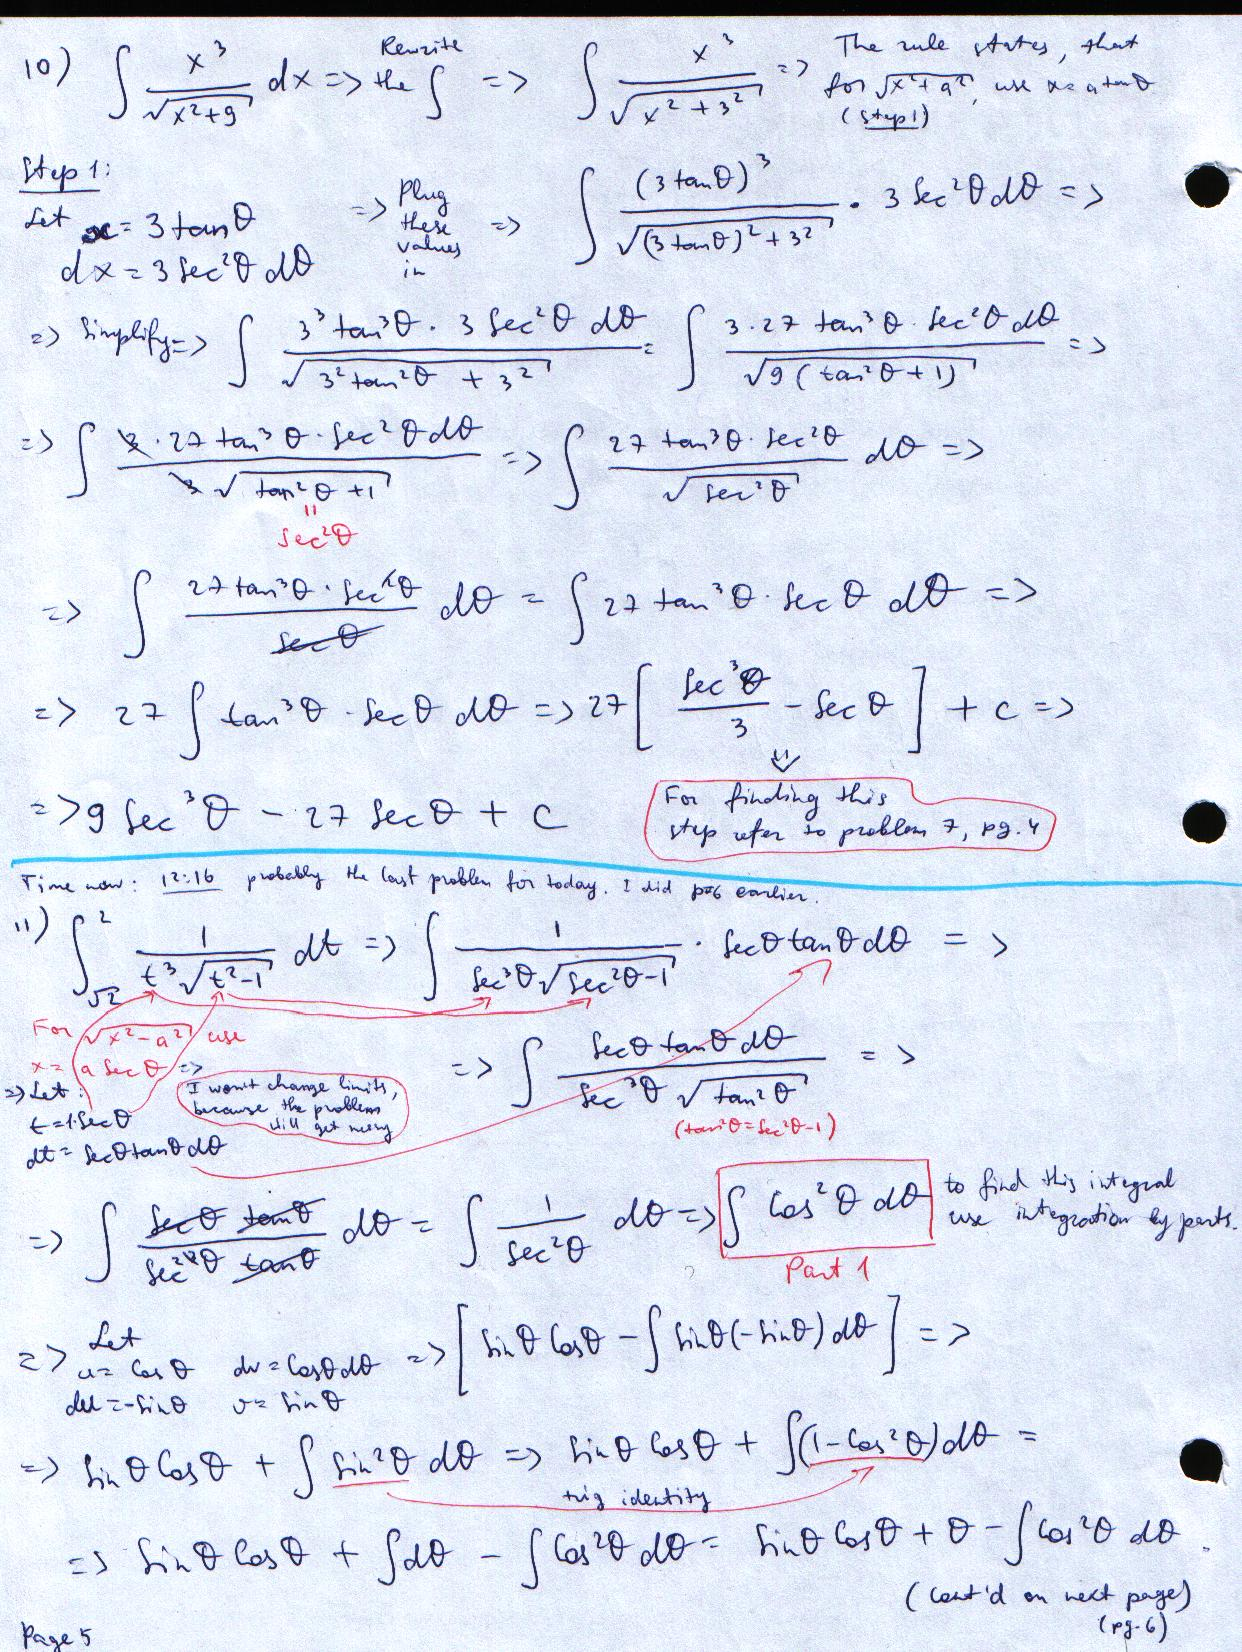 Calculus review sheet problems' solutions!12/17/09 | My Calculus ...